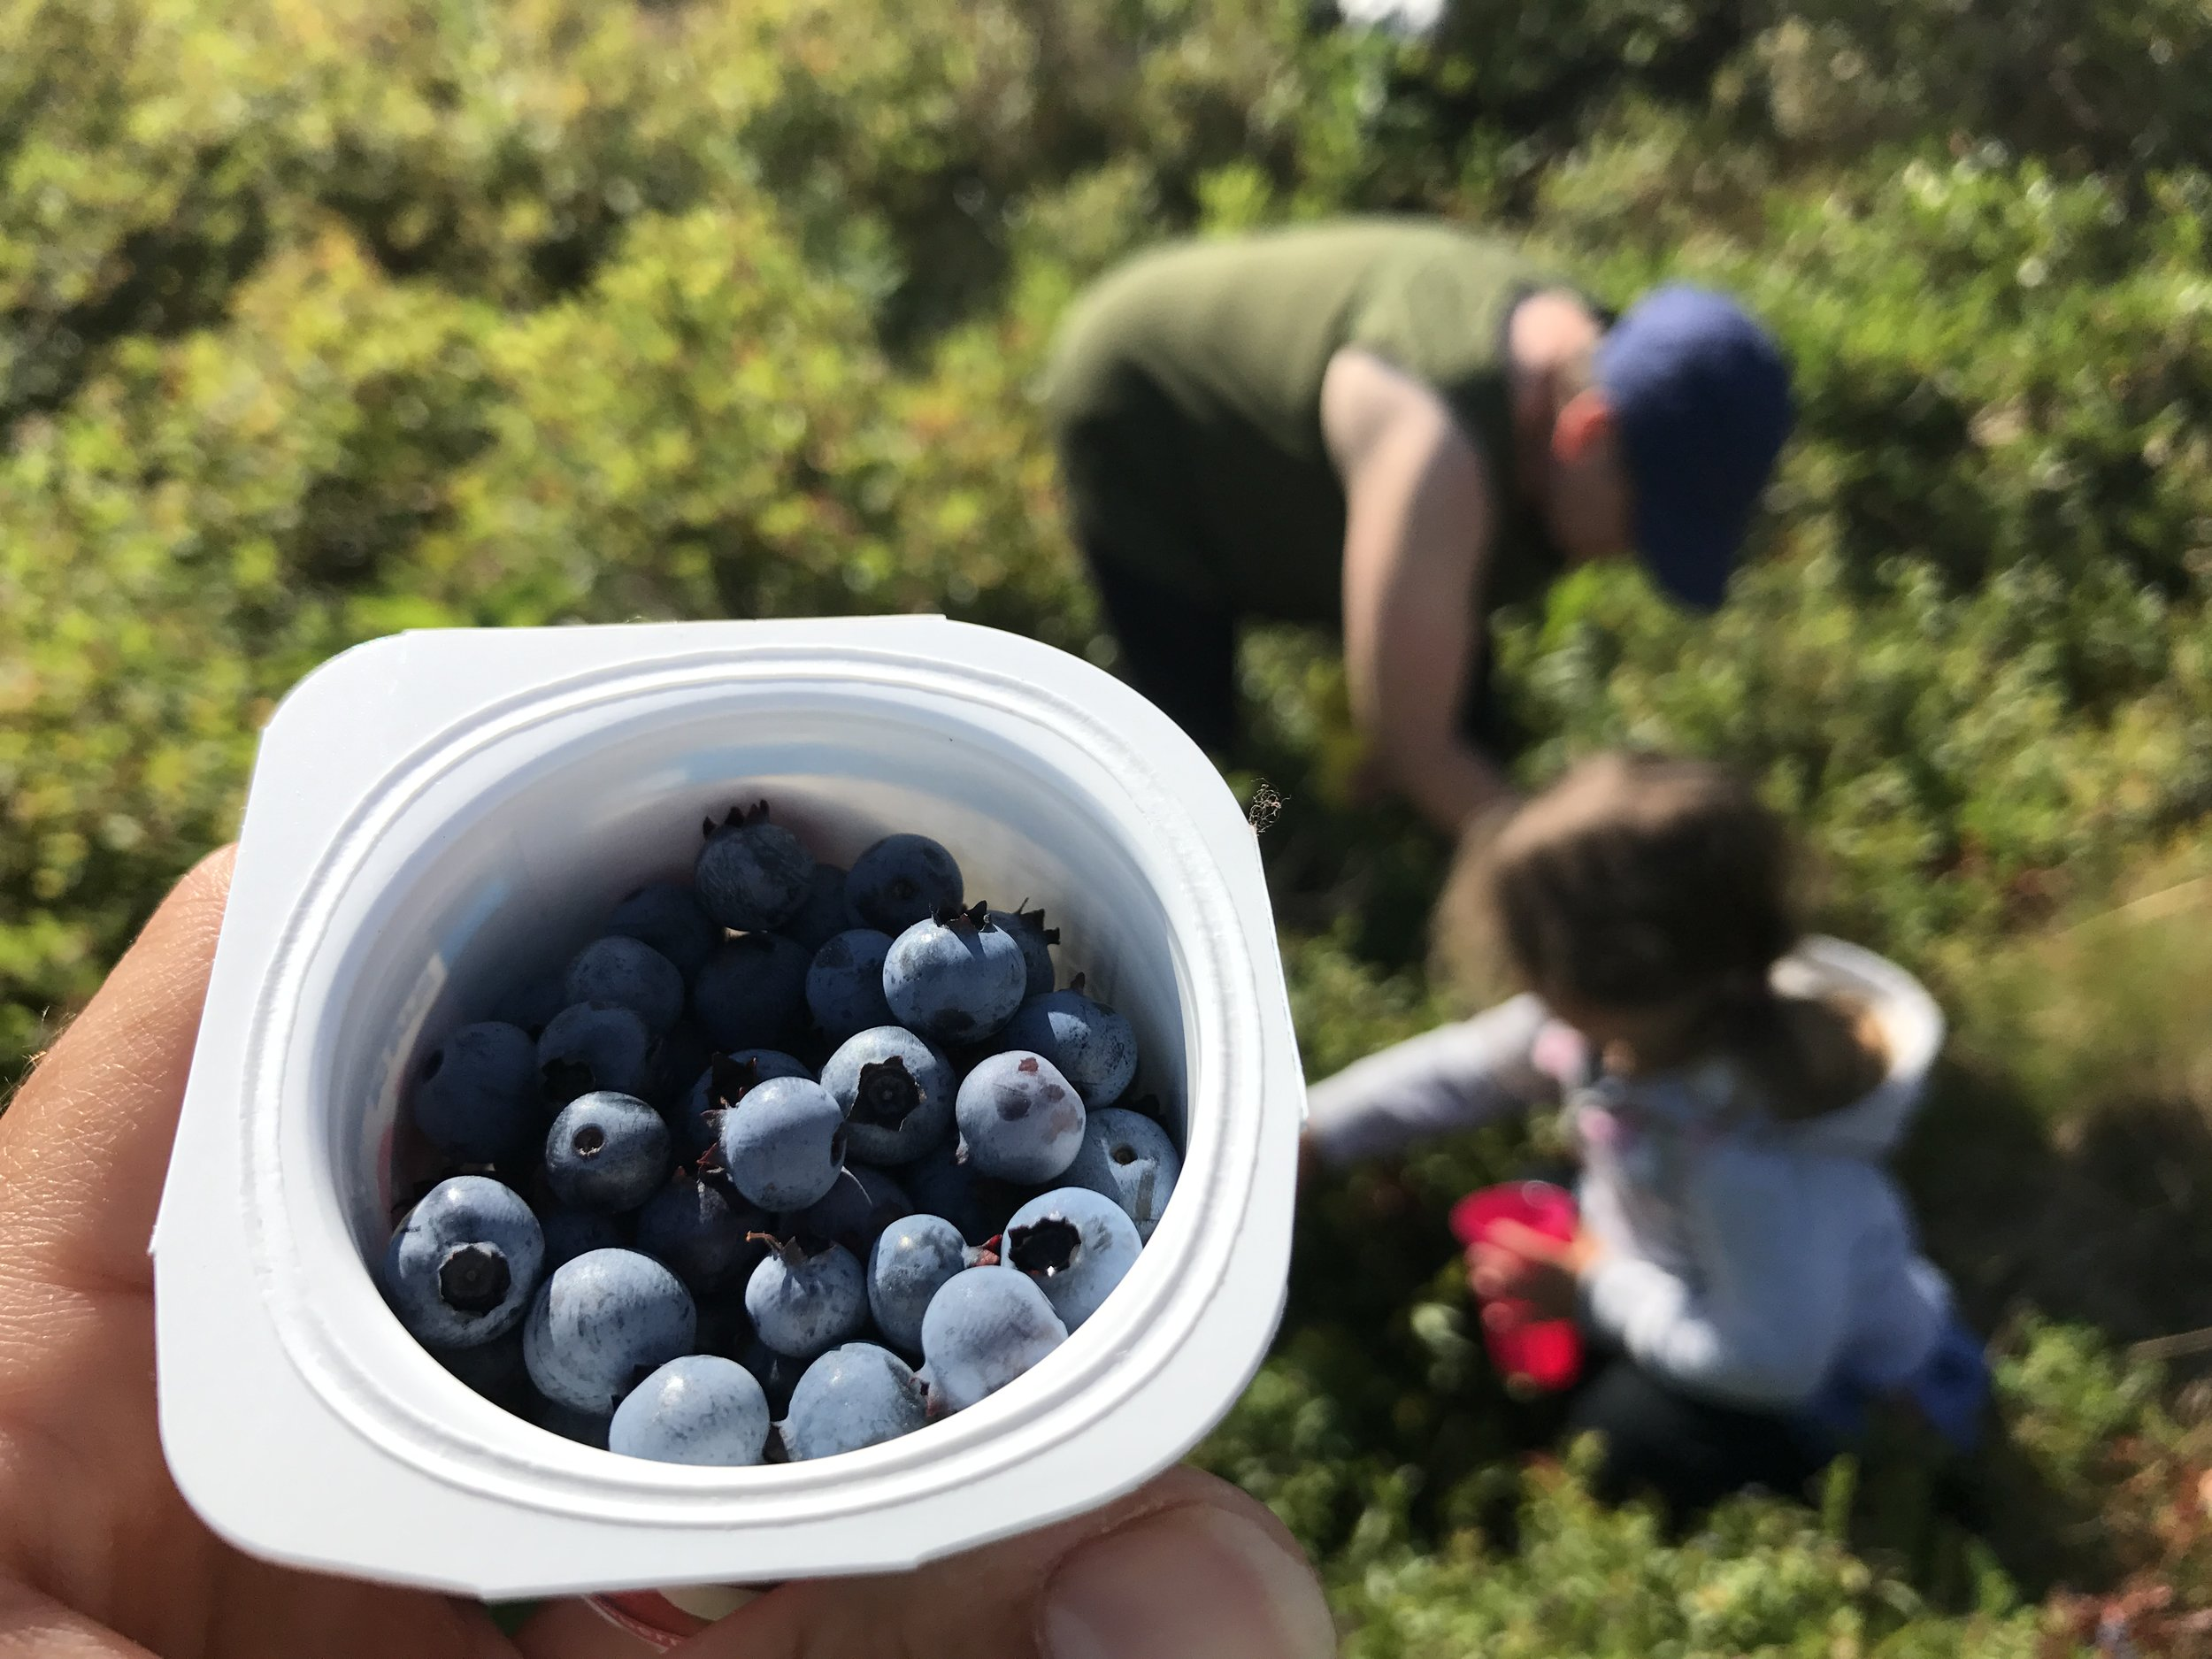 We ate a huge amount of wild blueberries, fresh and in crumbles. Blueberry picking in Petit-de-Grat.